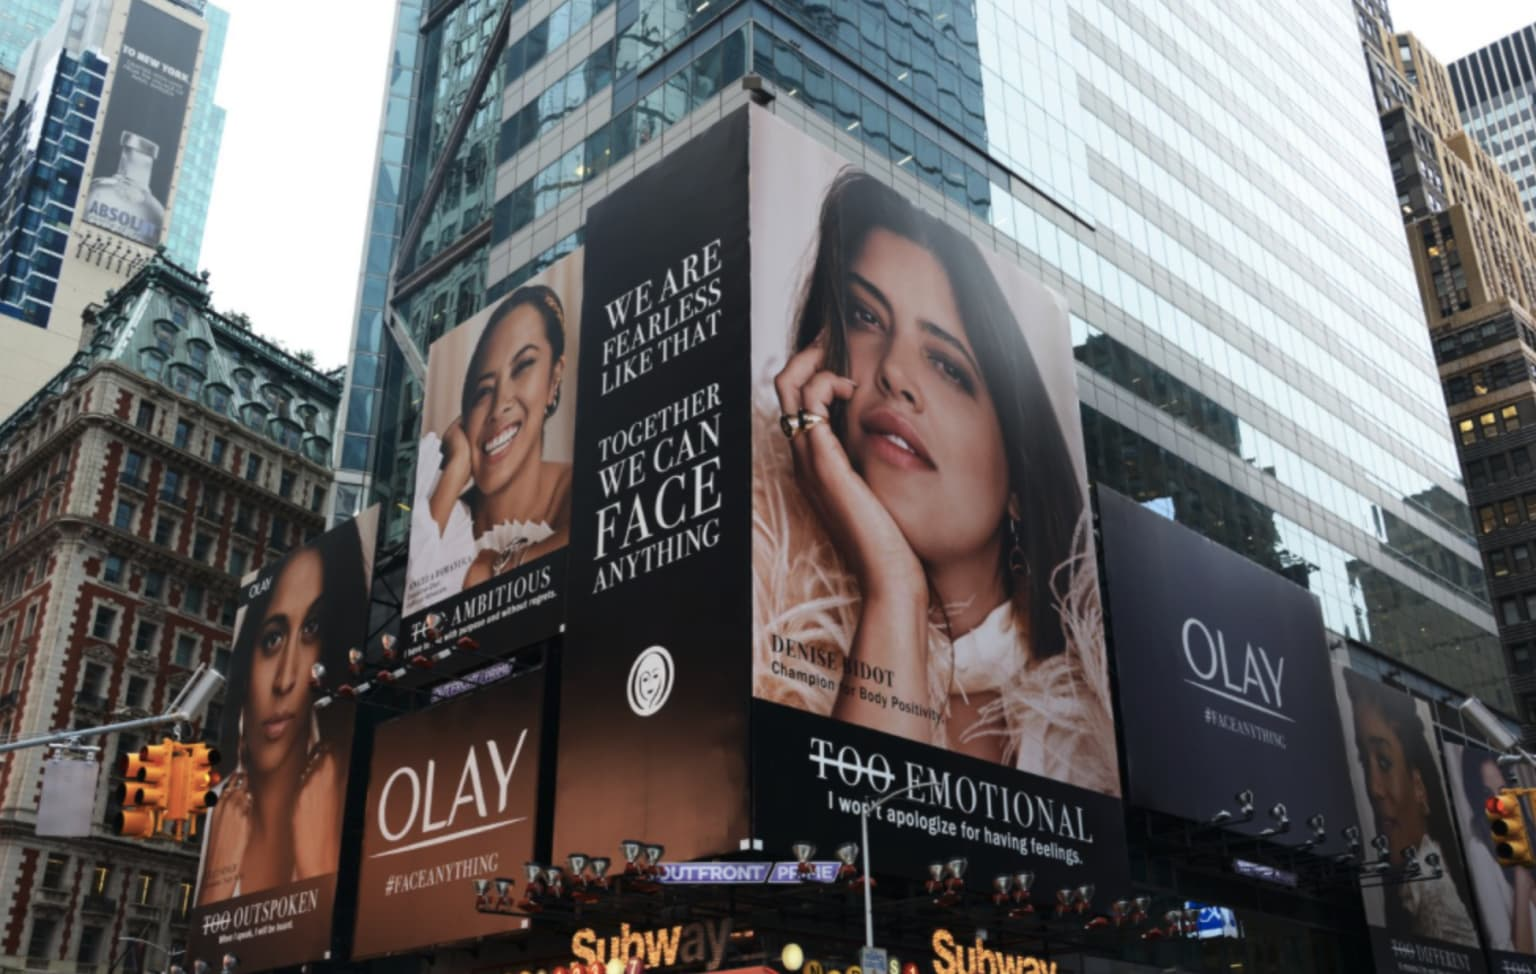 Olay Face Anything Campaign